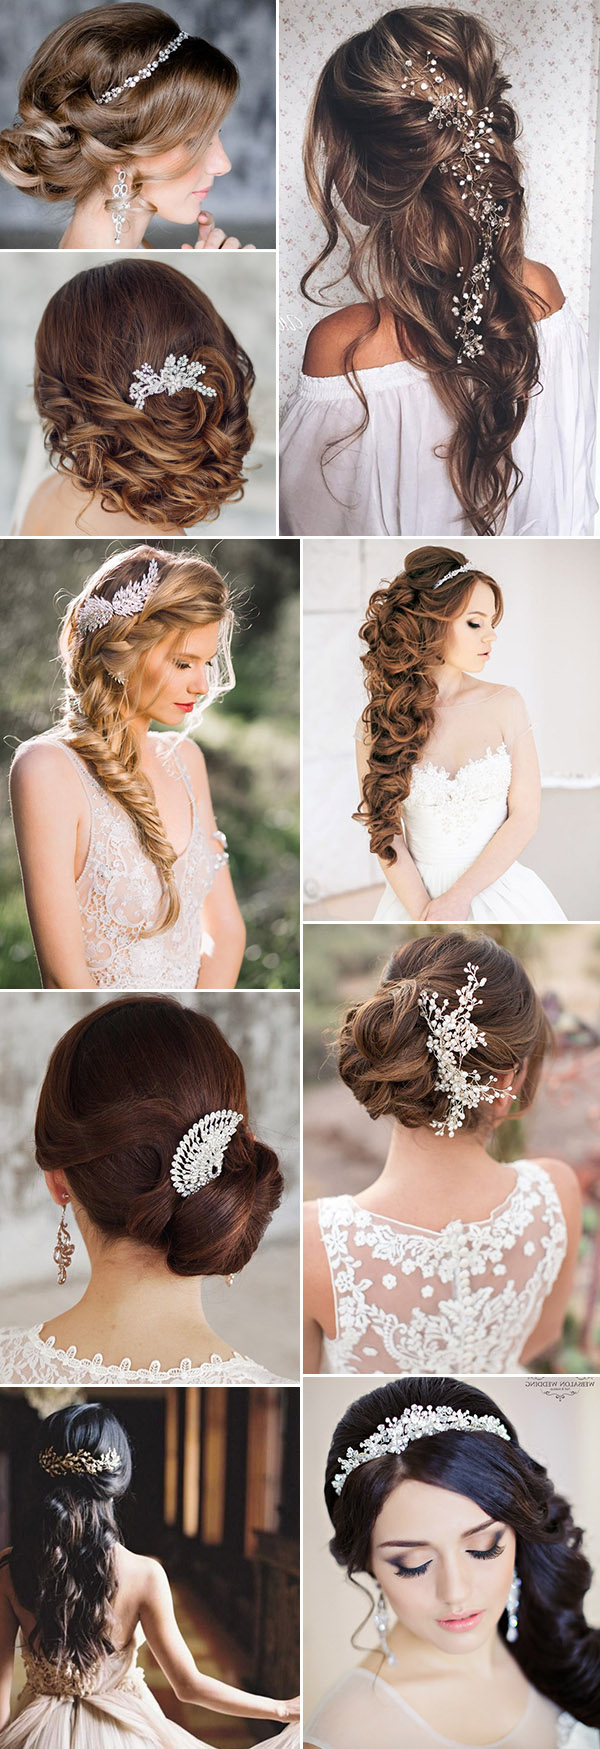 Top 20 Bridal Headpieces For Your Wedding Hairstyles Intended For Famous Half Up Wedding Hairstyles With Jeweled Clip (View 16 of 20)